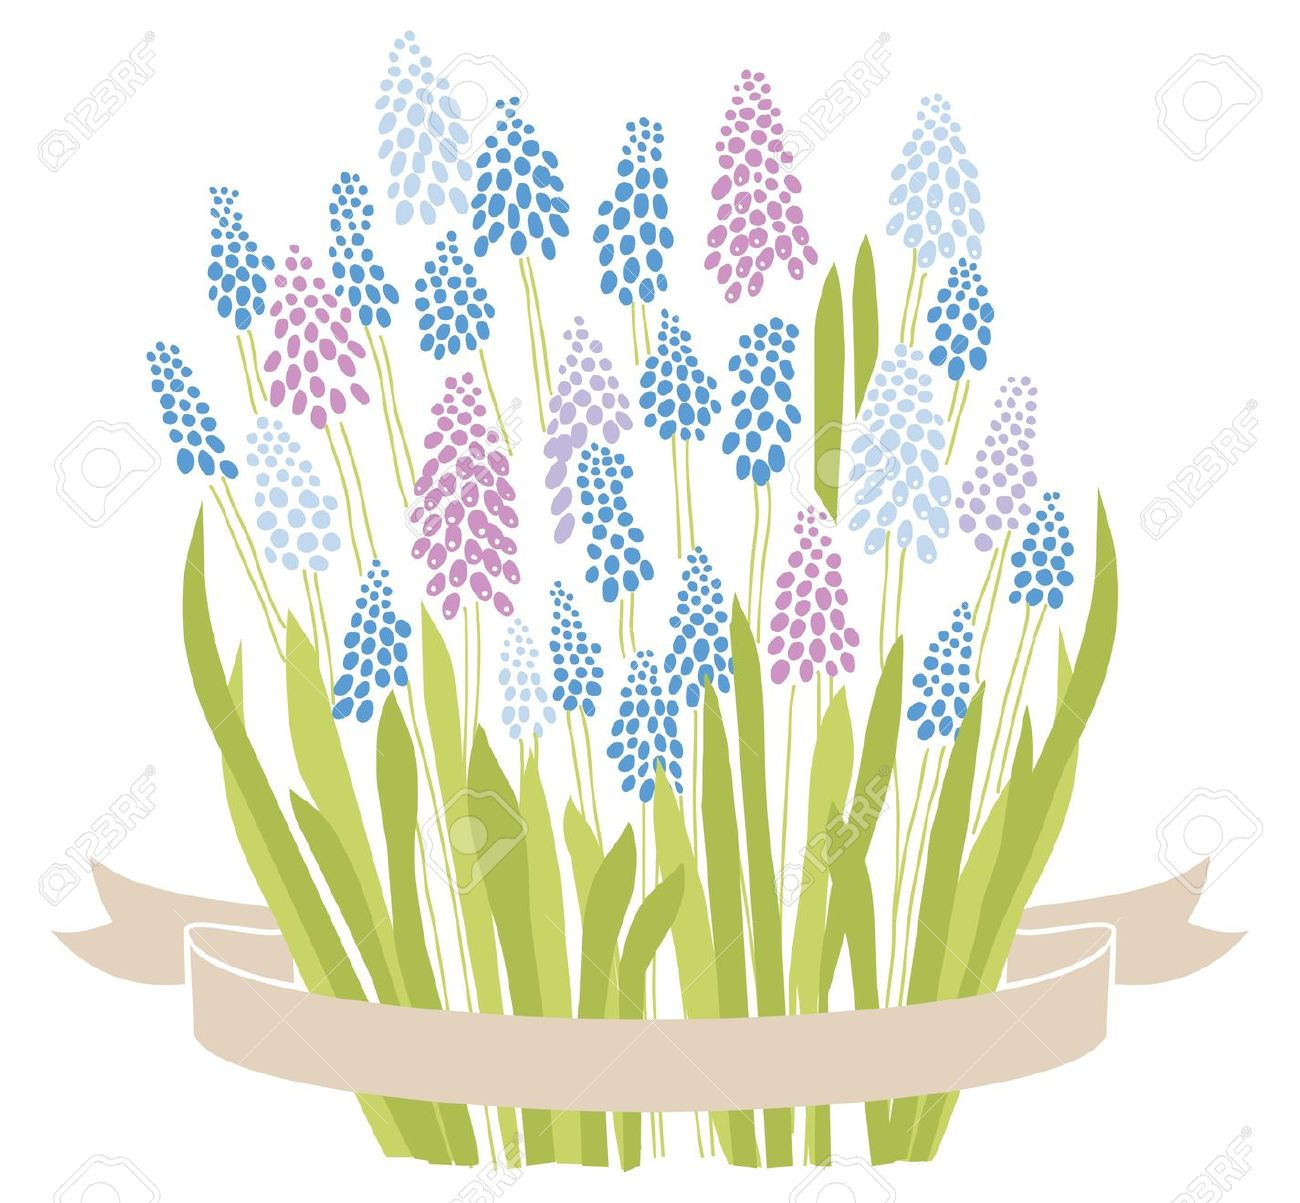 Grape Hyacinth clipart #16, Download drawings